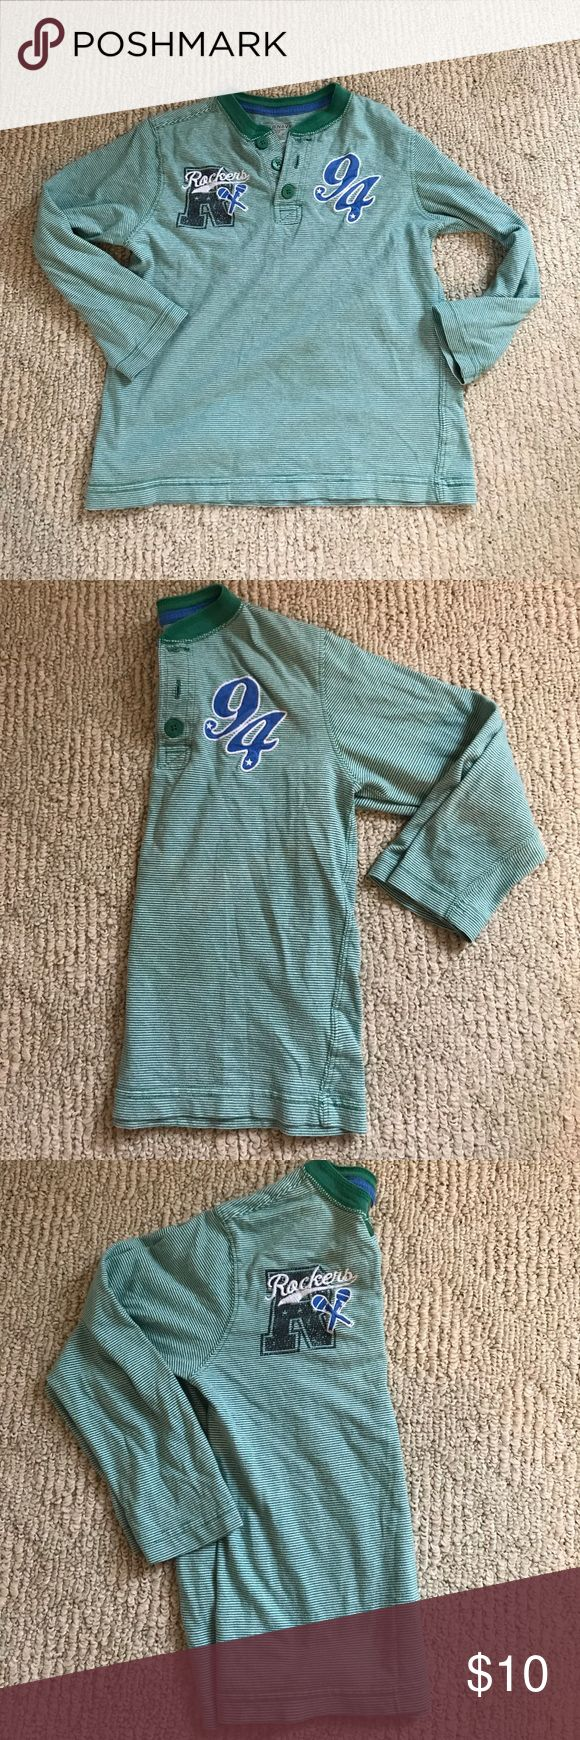 Boys Henley top Gently used old navy green and white Henley small (6-7) blue patch/ embroidered accents on front. No hole, no stains. No trades Old Navy Shirts & Tops Tees - Long Sleeve